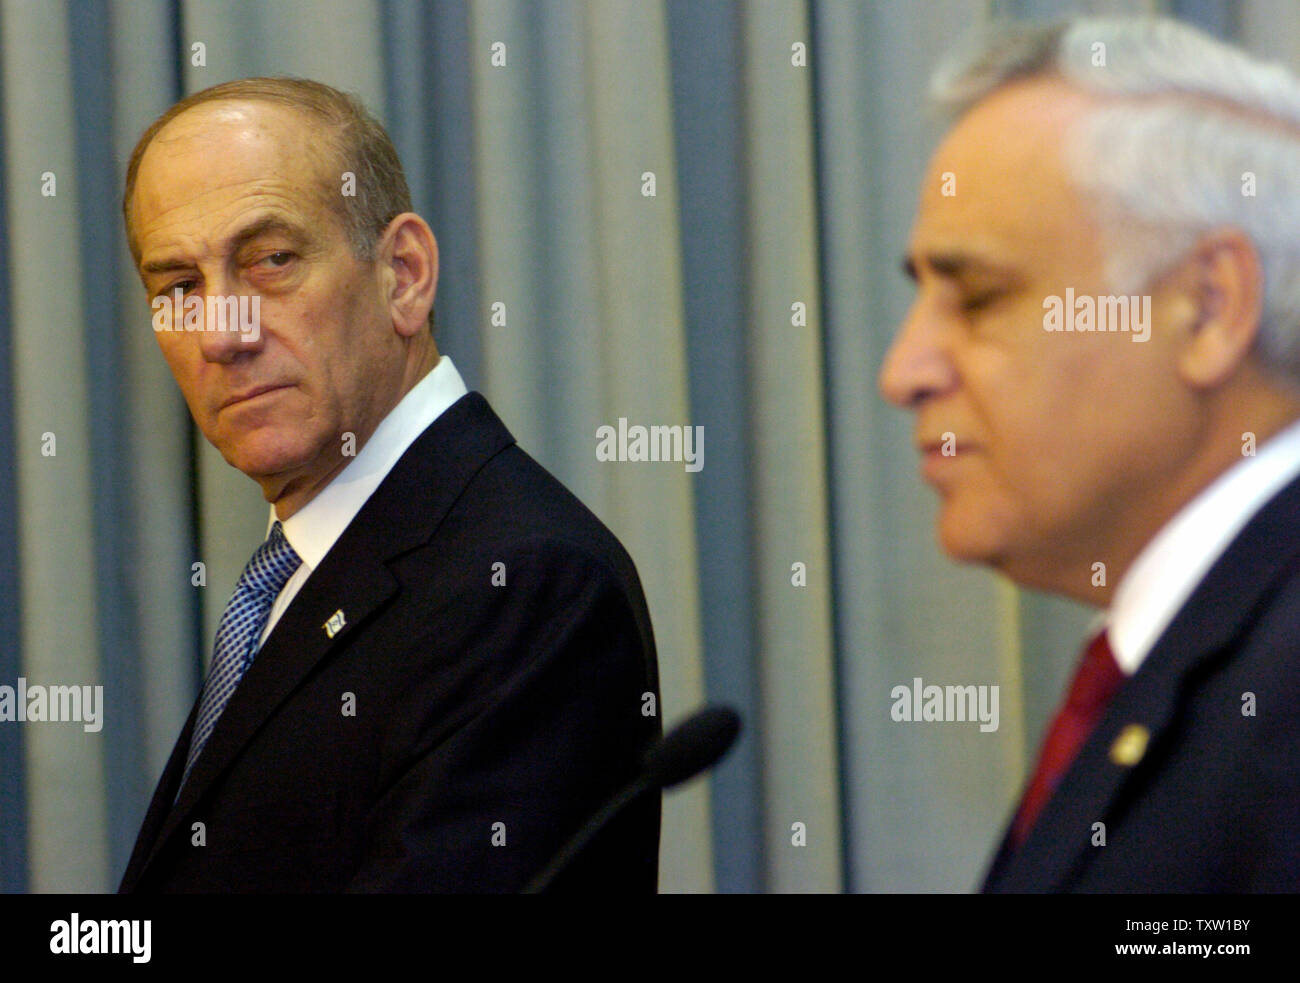 Israeli Acting Prime Minister Ehud Olmert attends a press conference with  President Moshe Katsav at the presidential residence in Jerusalem after being formally ask by President Moshe Katsav to form the next government, April 6, 2006, officially making the Kadima leader the prime minister-designate. (UPI Photo/Debbie Hill) - Stock Image